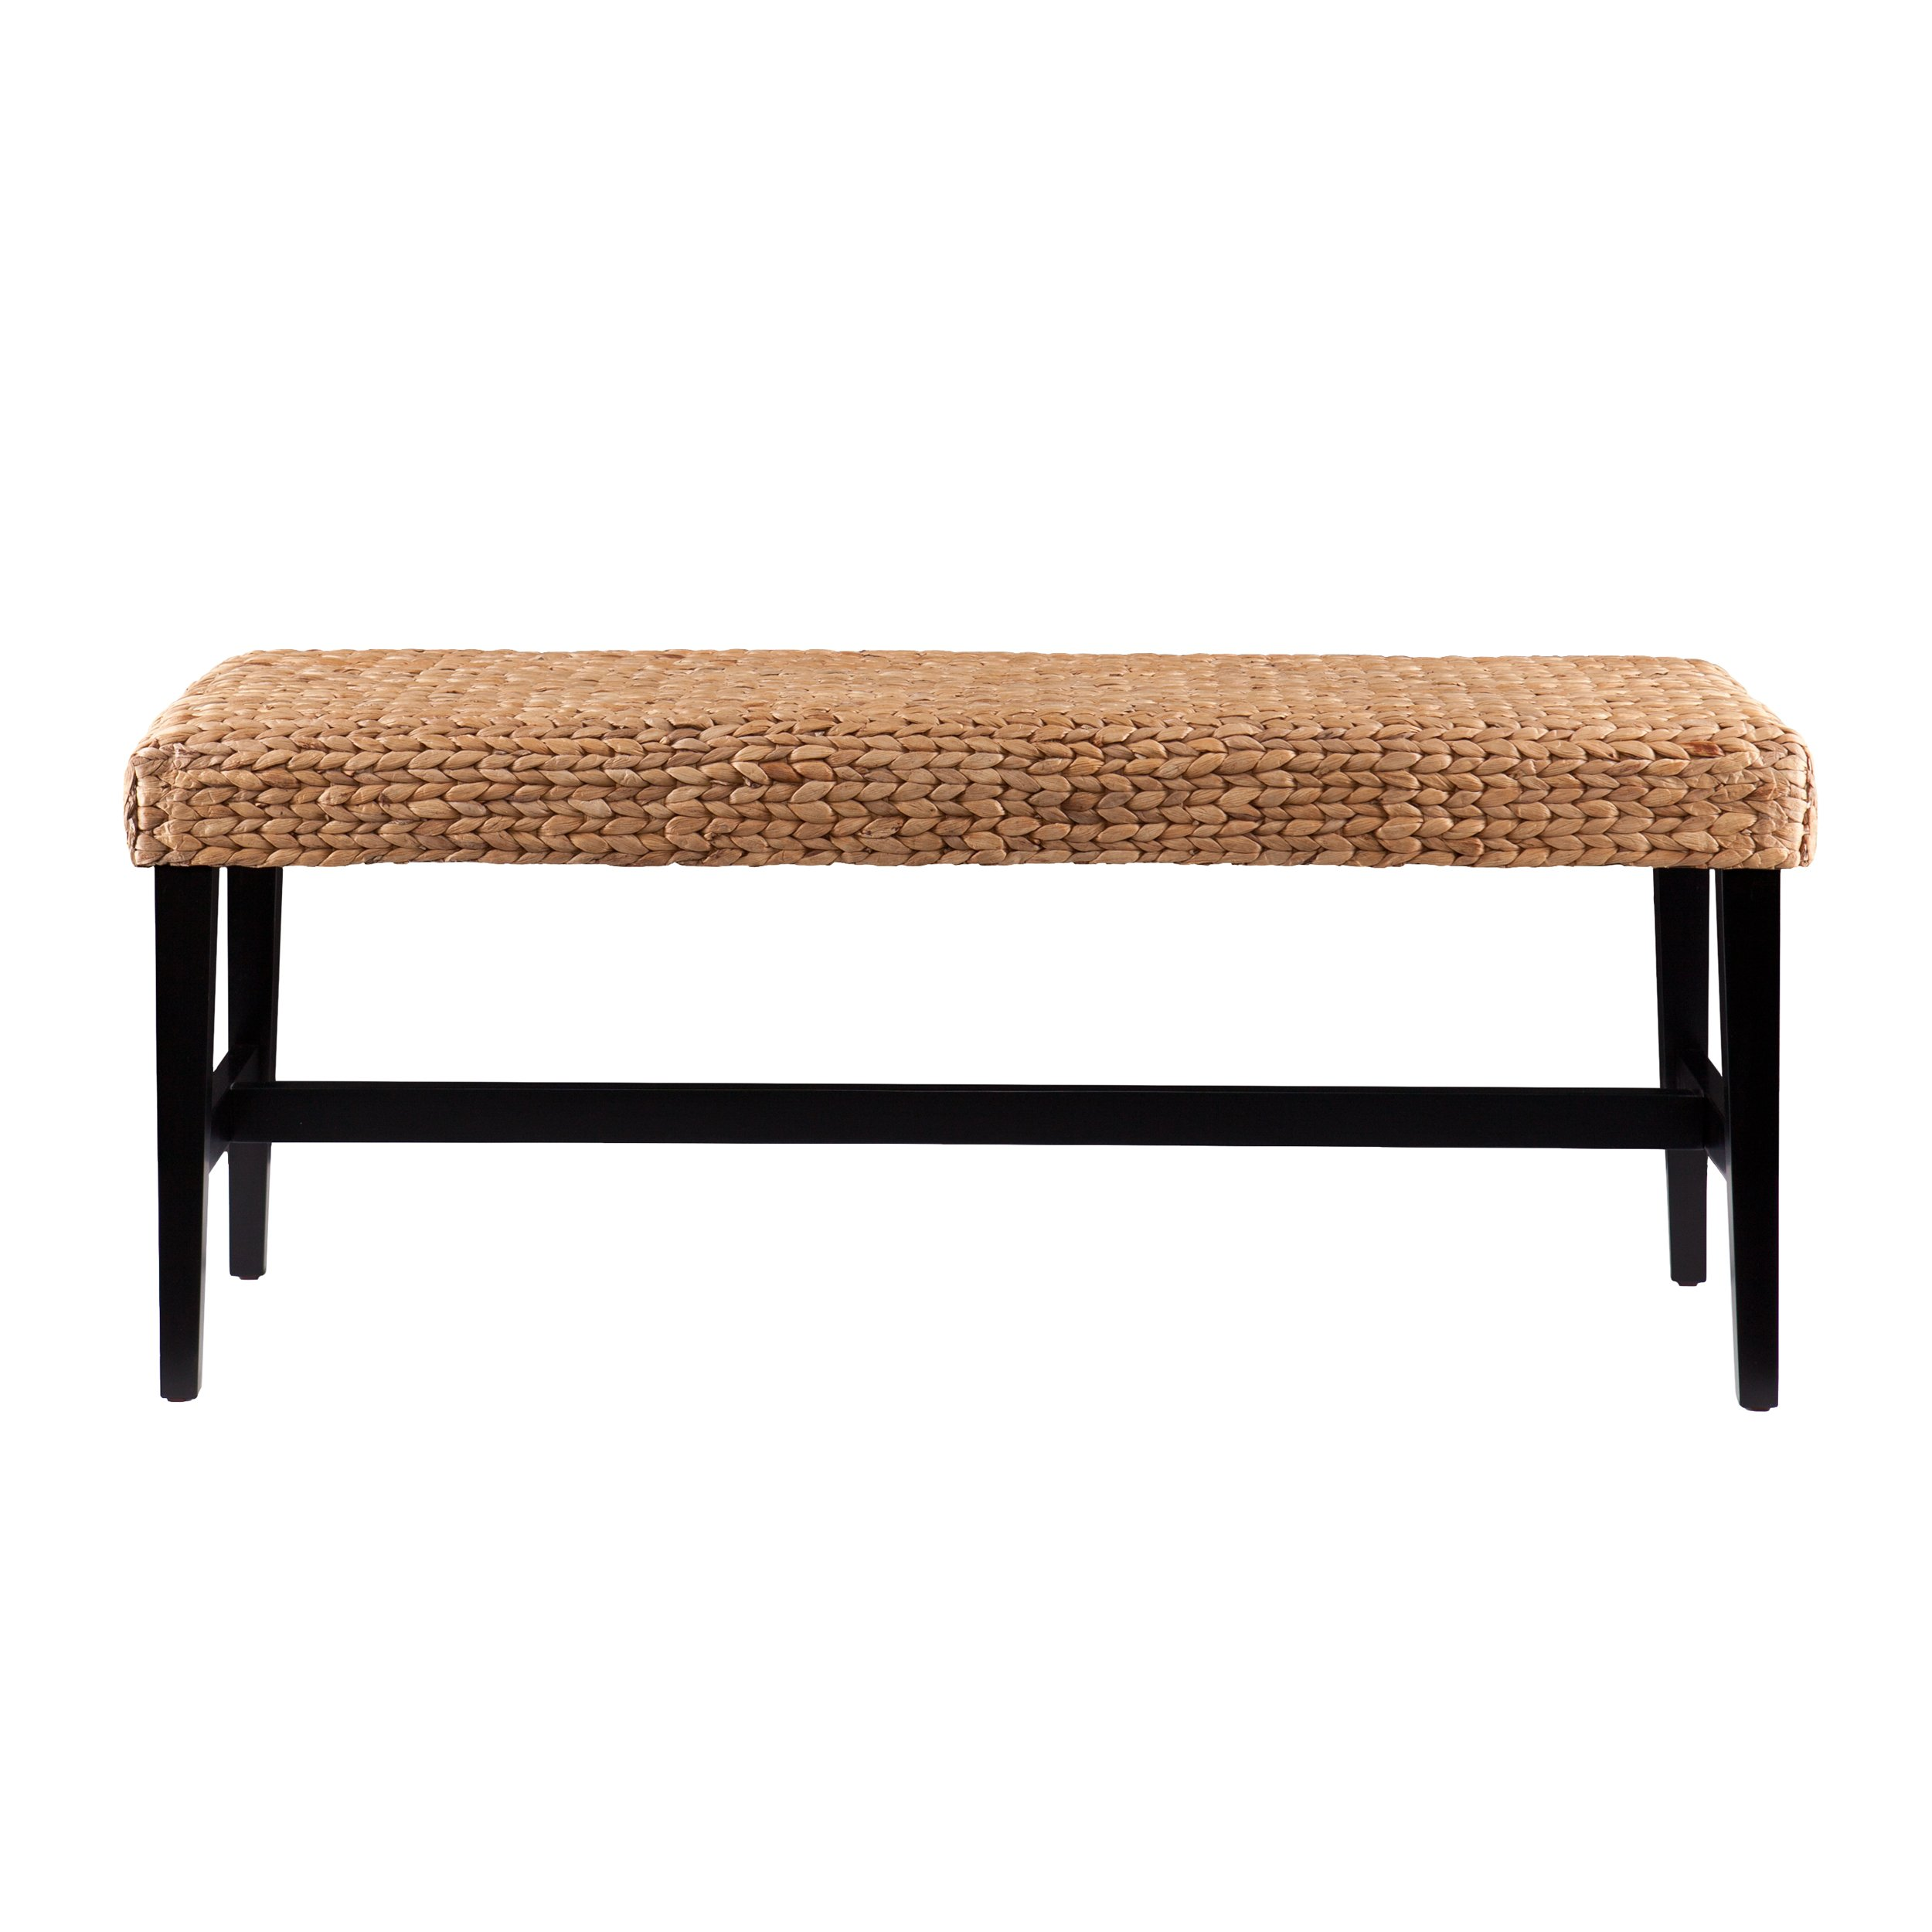 Water Hyacinth Woven Bench - Wood Frame Base - Coastal Inspired Style